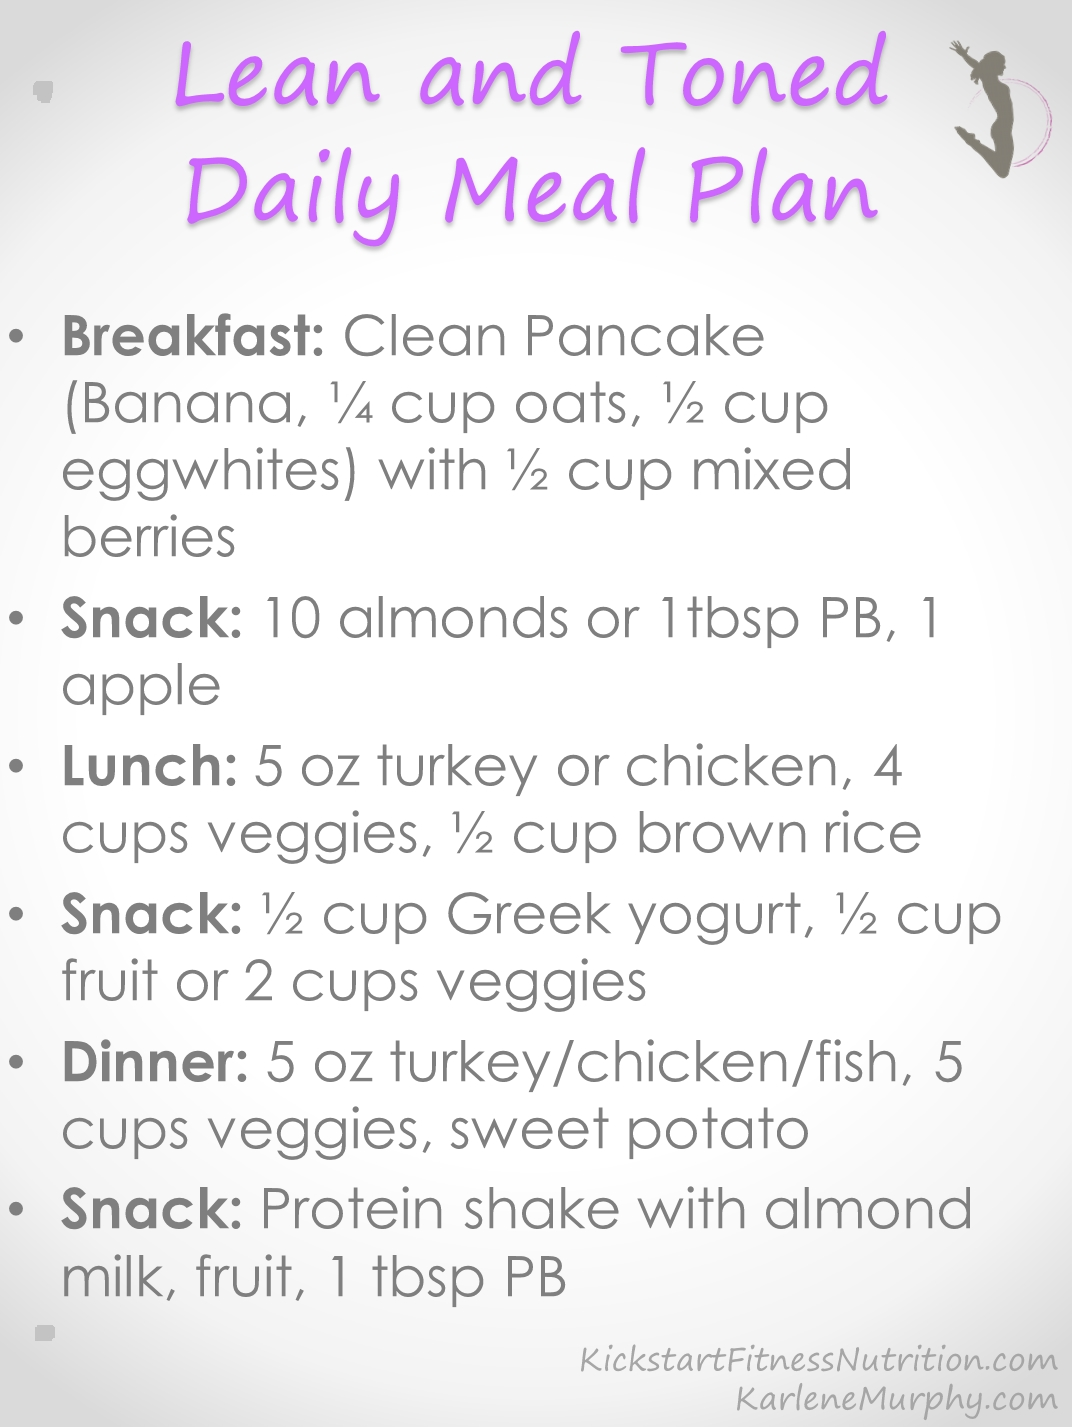 Clean Eating Daily Meal Plan Ok, I can do this!.. then I noticed the cRAzy amount of vegetables.. I can't 'fit' that much food/that many vegetables in me. I'll have to cut something out/down. #weightlossmotivation